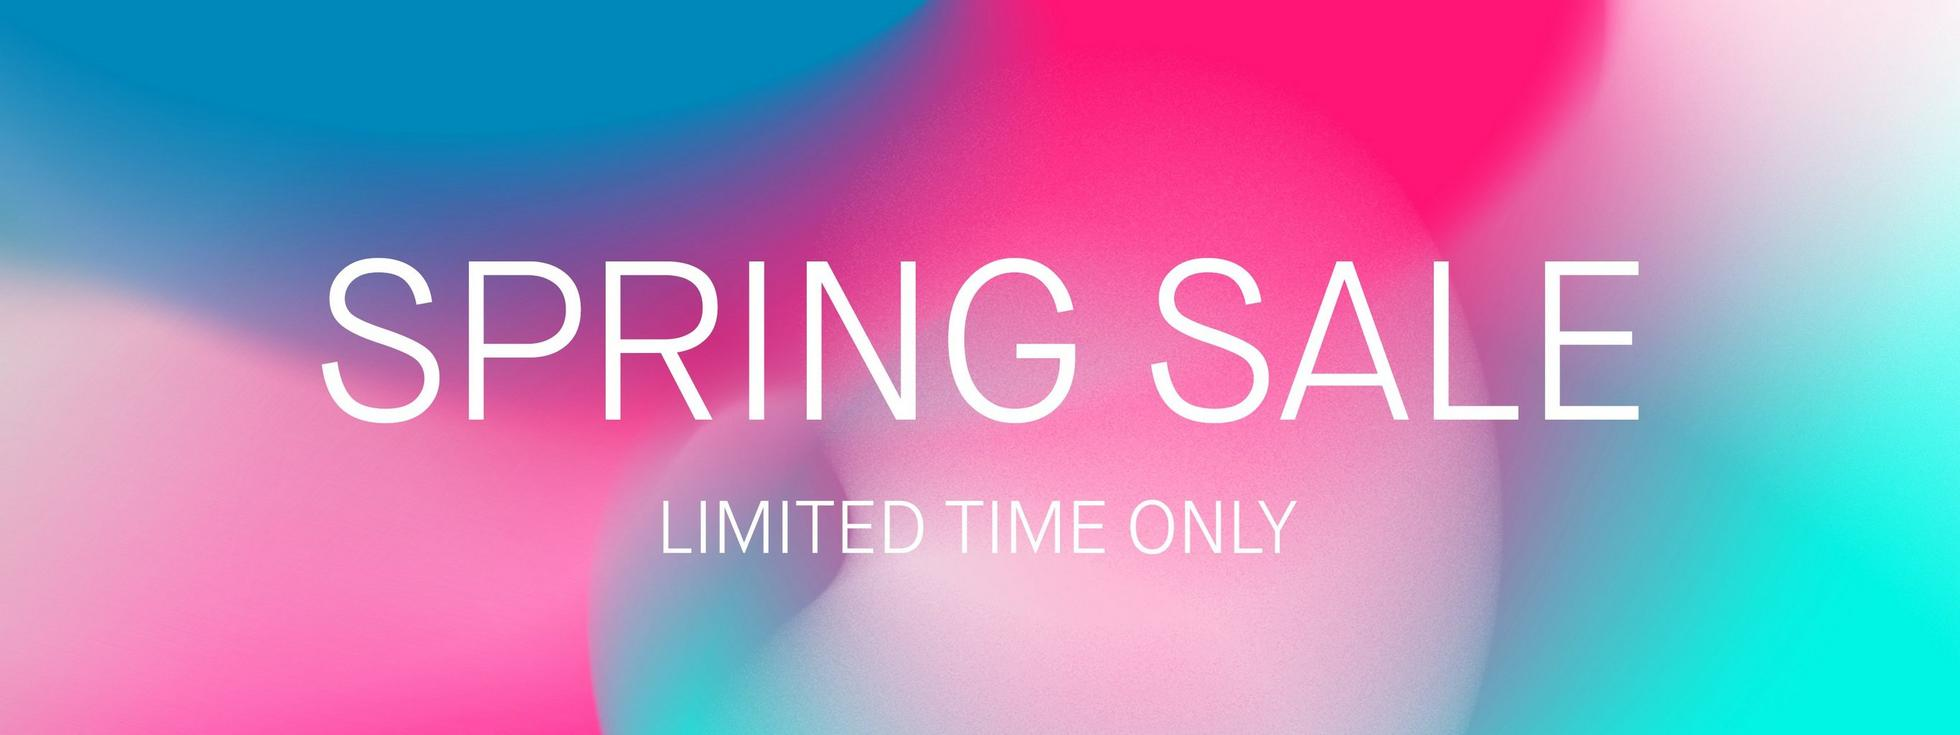 Limited Time Sale Enjoy 25% Off Select Items